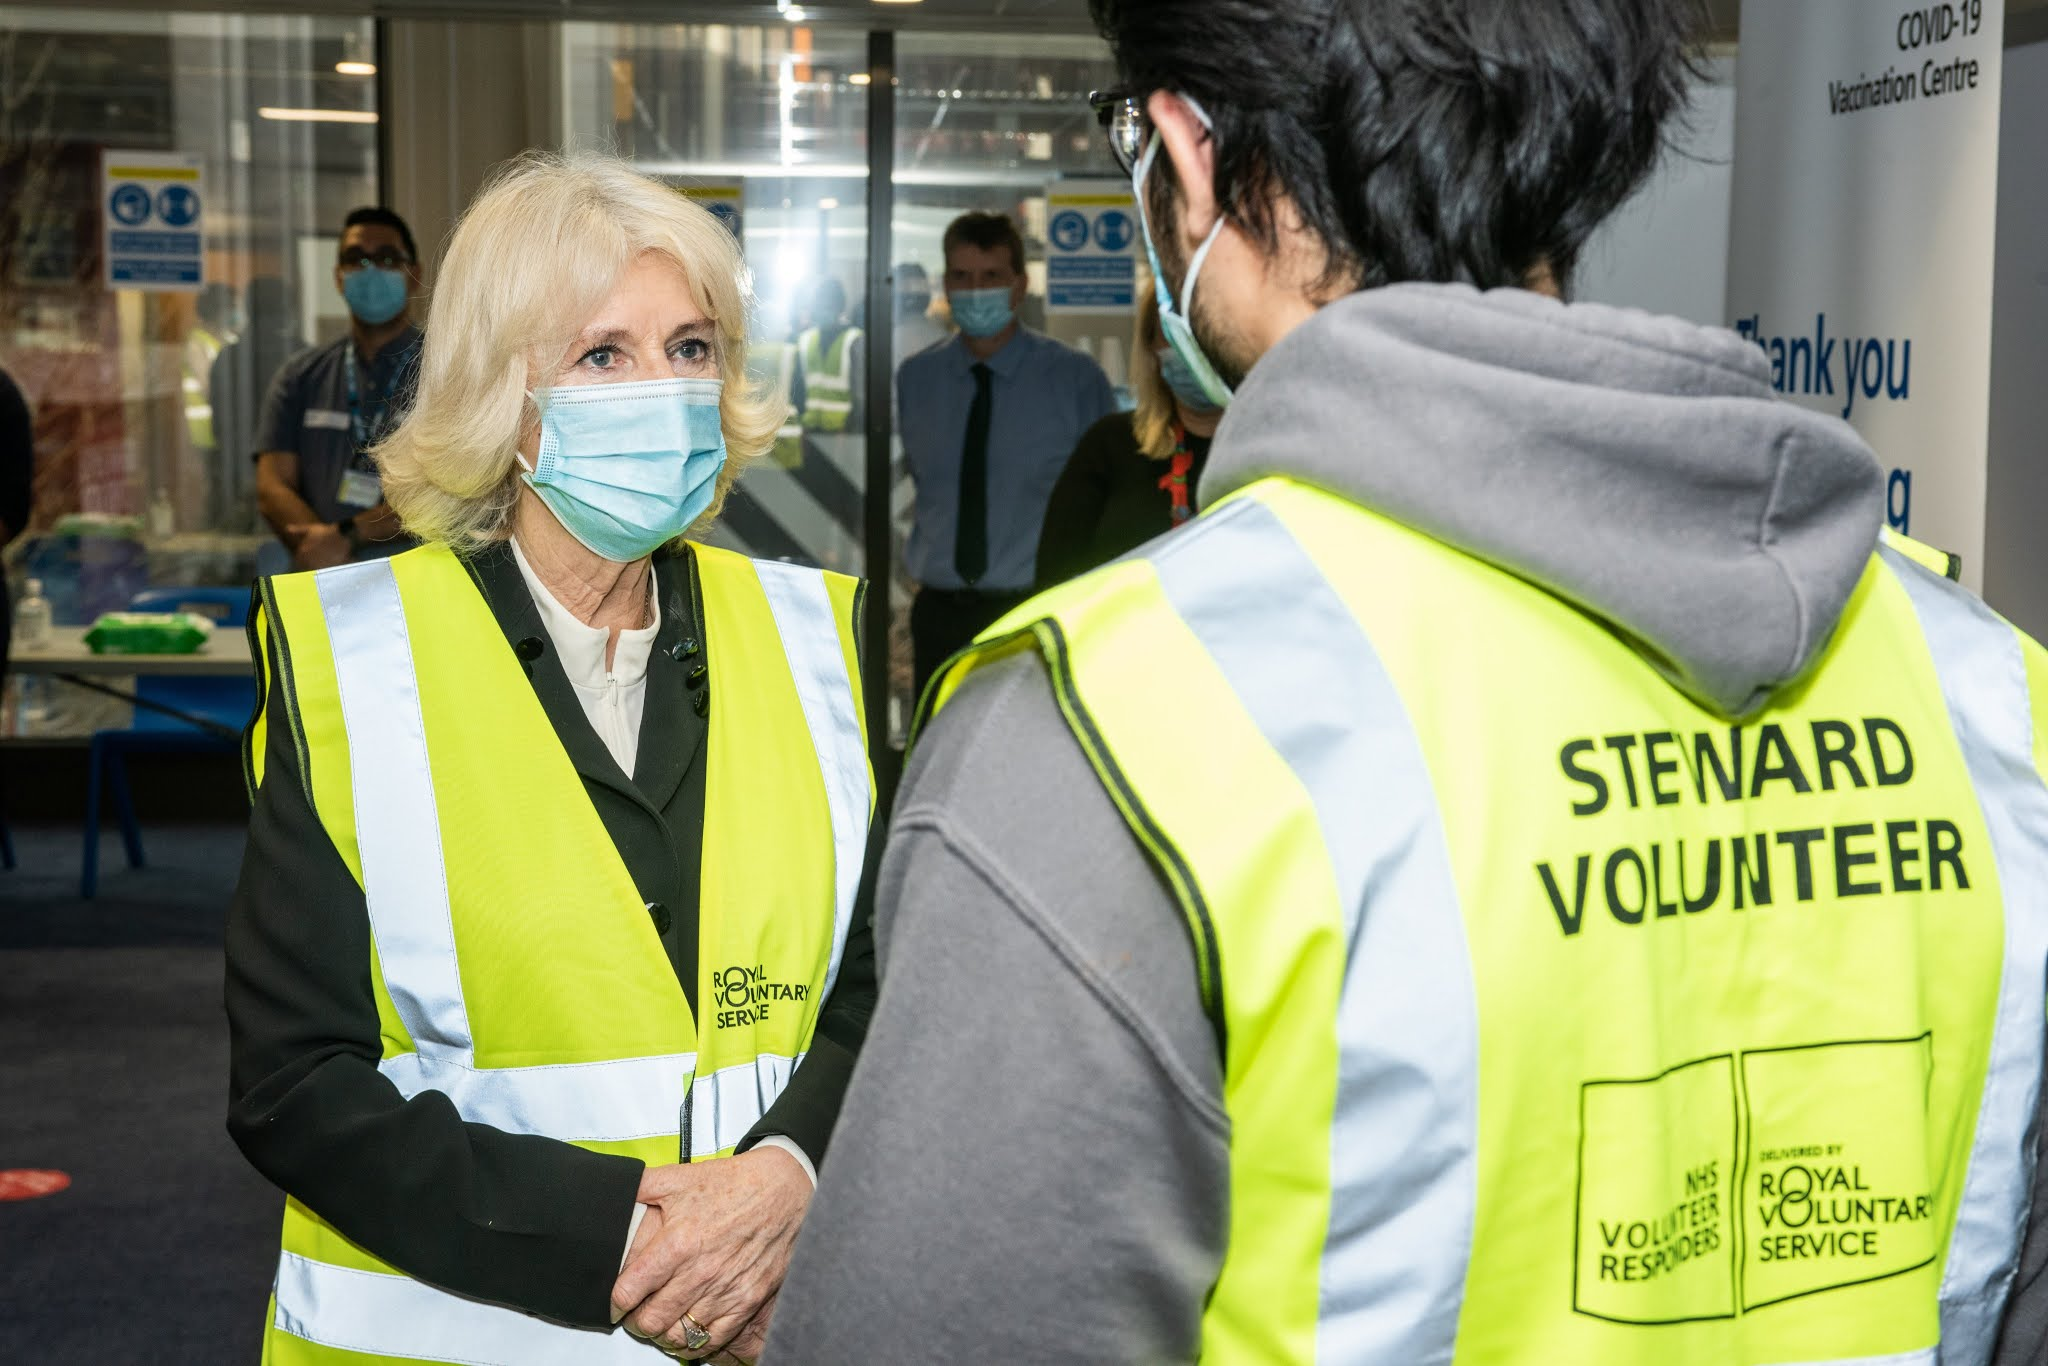 The Duchess of Cornwall visited London North West University Healthcare NHS Trustone at Wembley Park COVID-19 vaccination centres to meet with staff and volunteers.